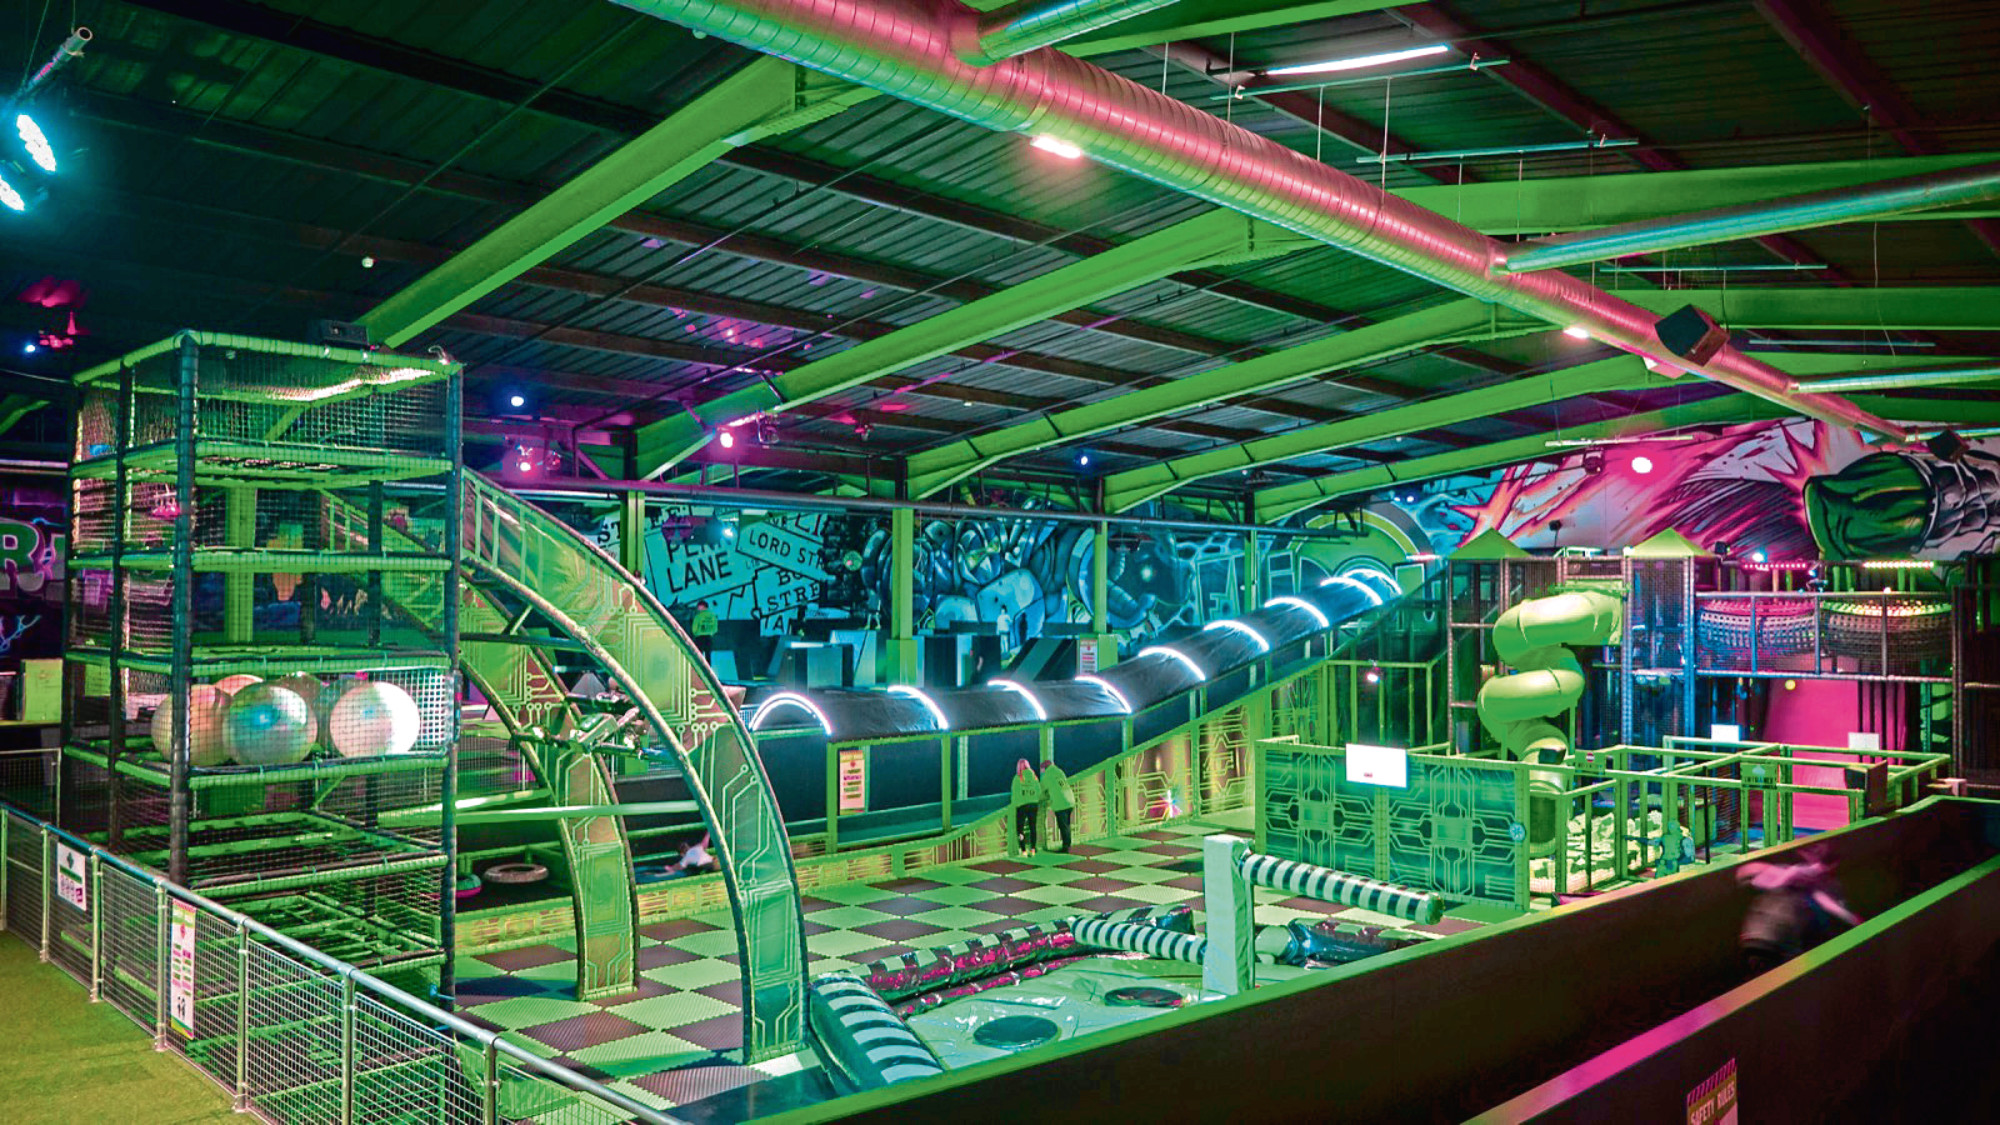 Flip Out will open a 65,000 sqft adventure park in the former BHS building on Union Street in Aberdeen